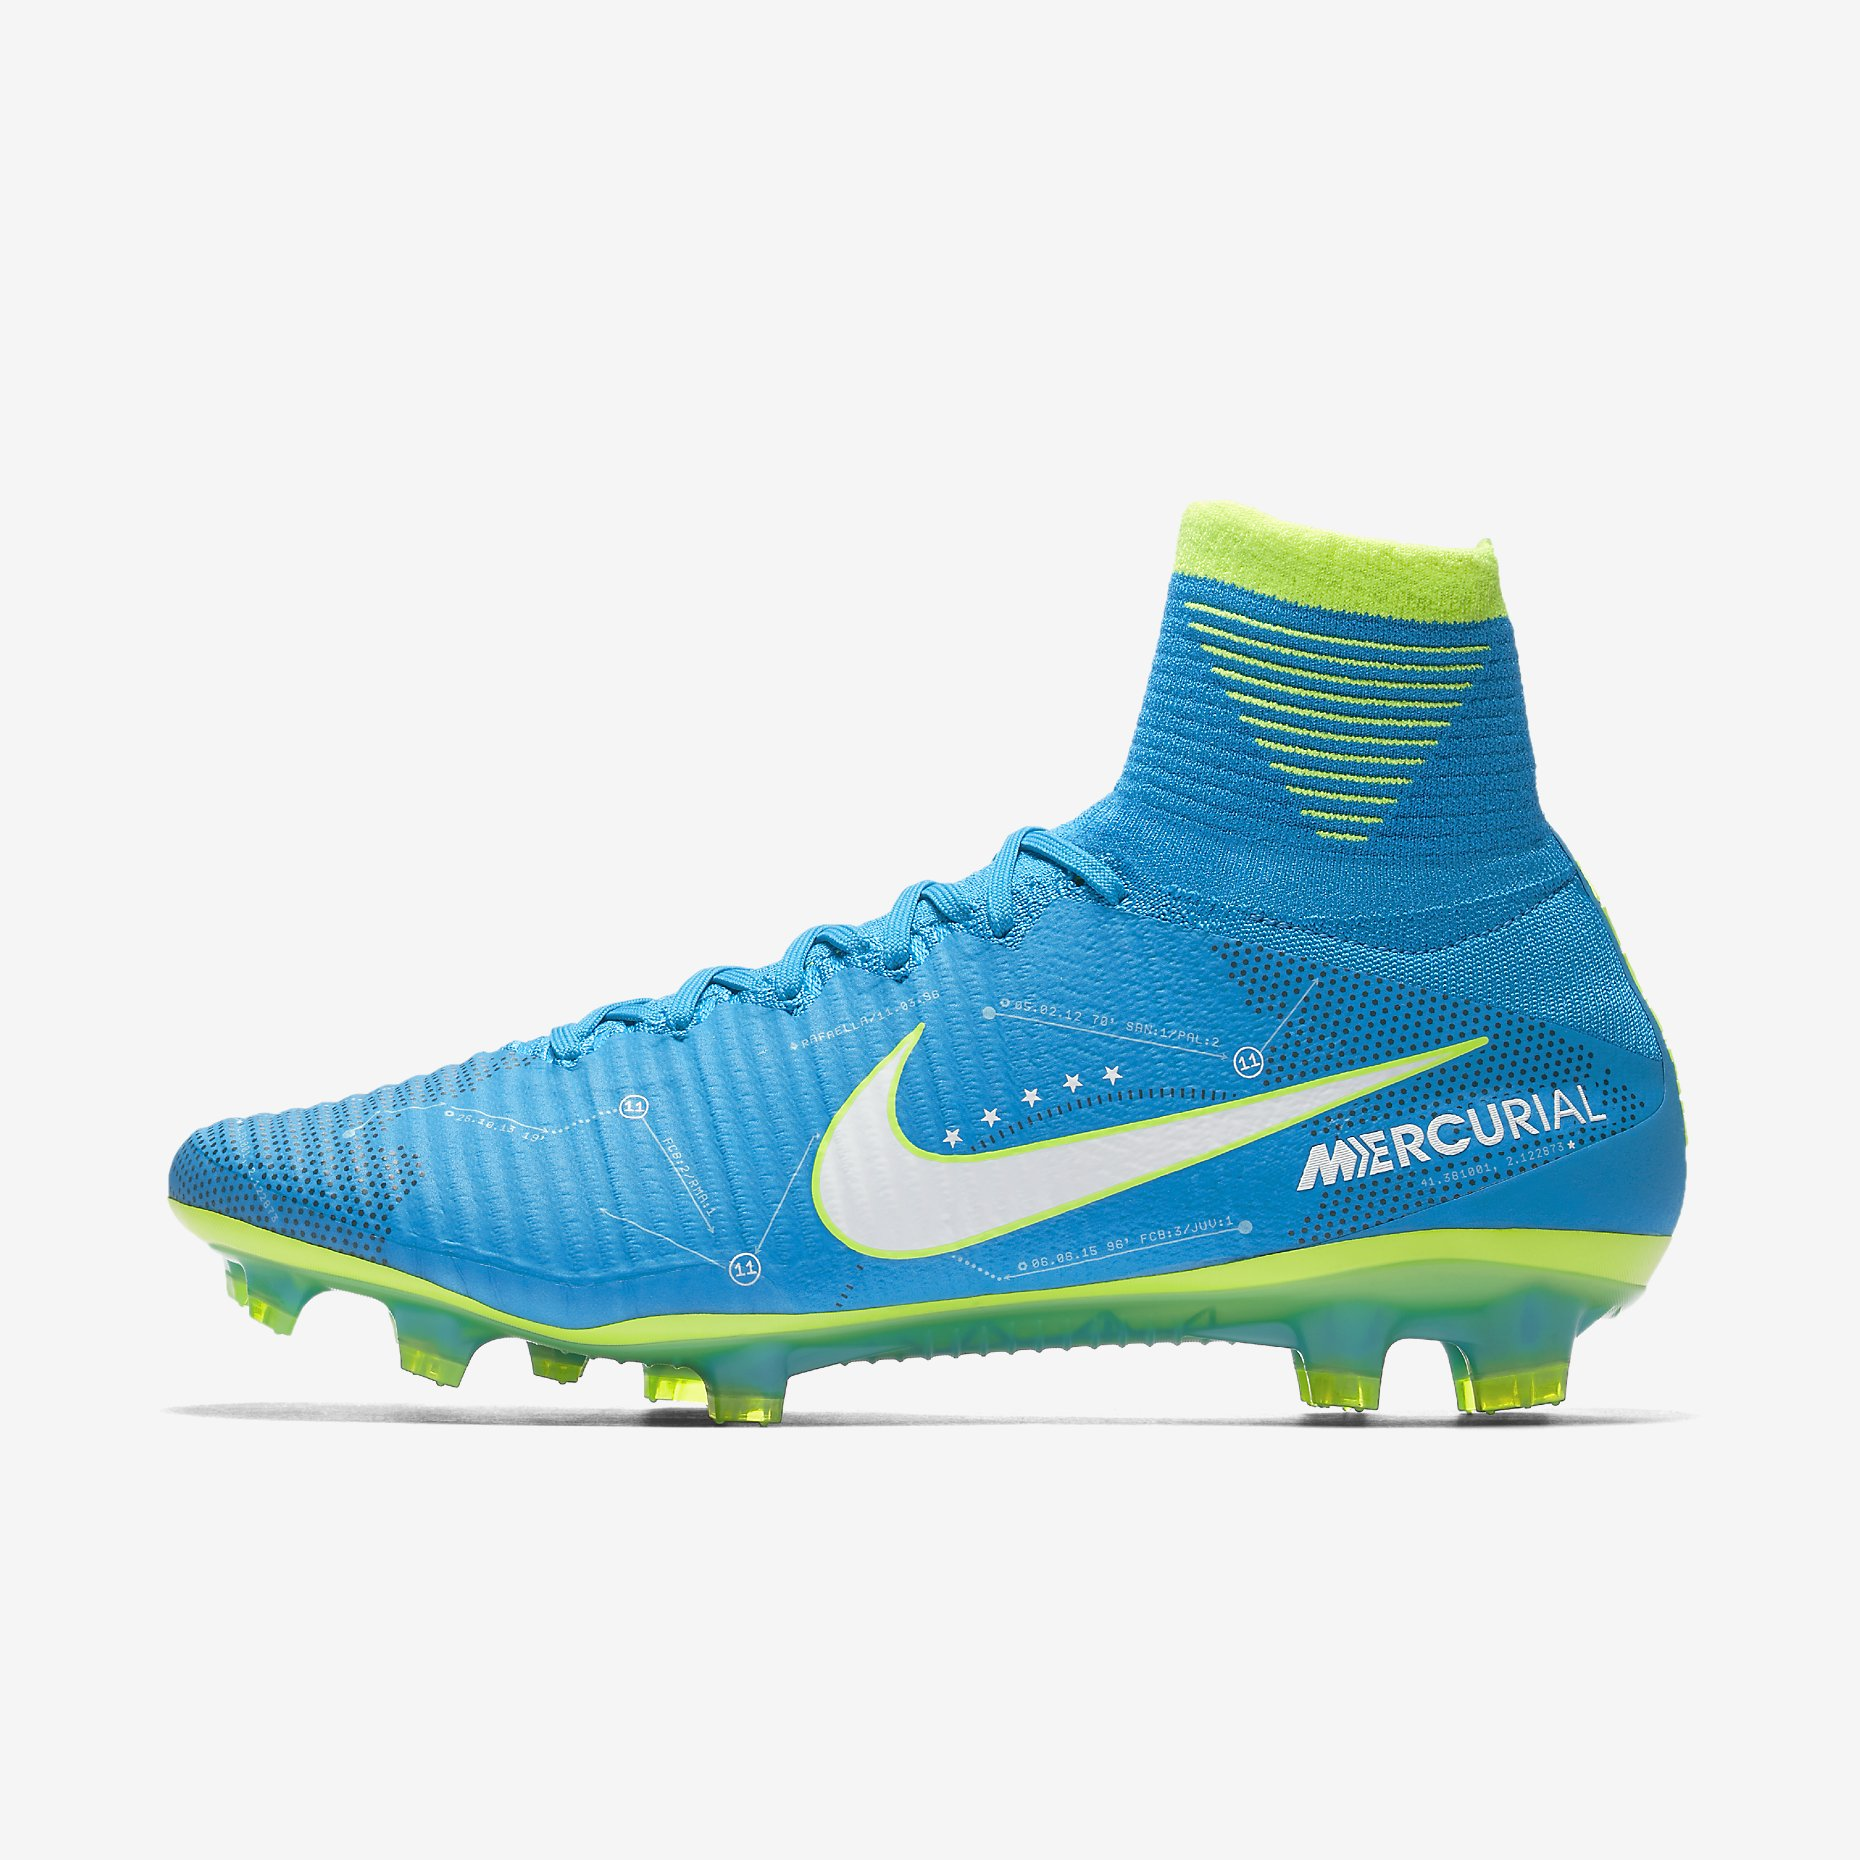 Nike Football Cleats Com